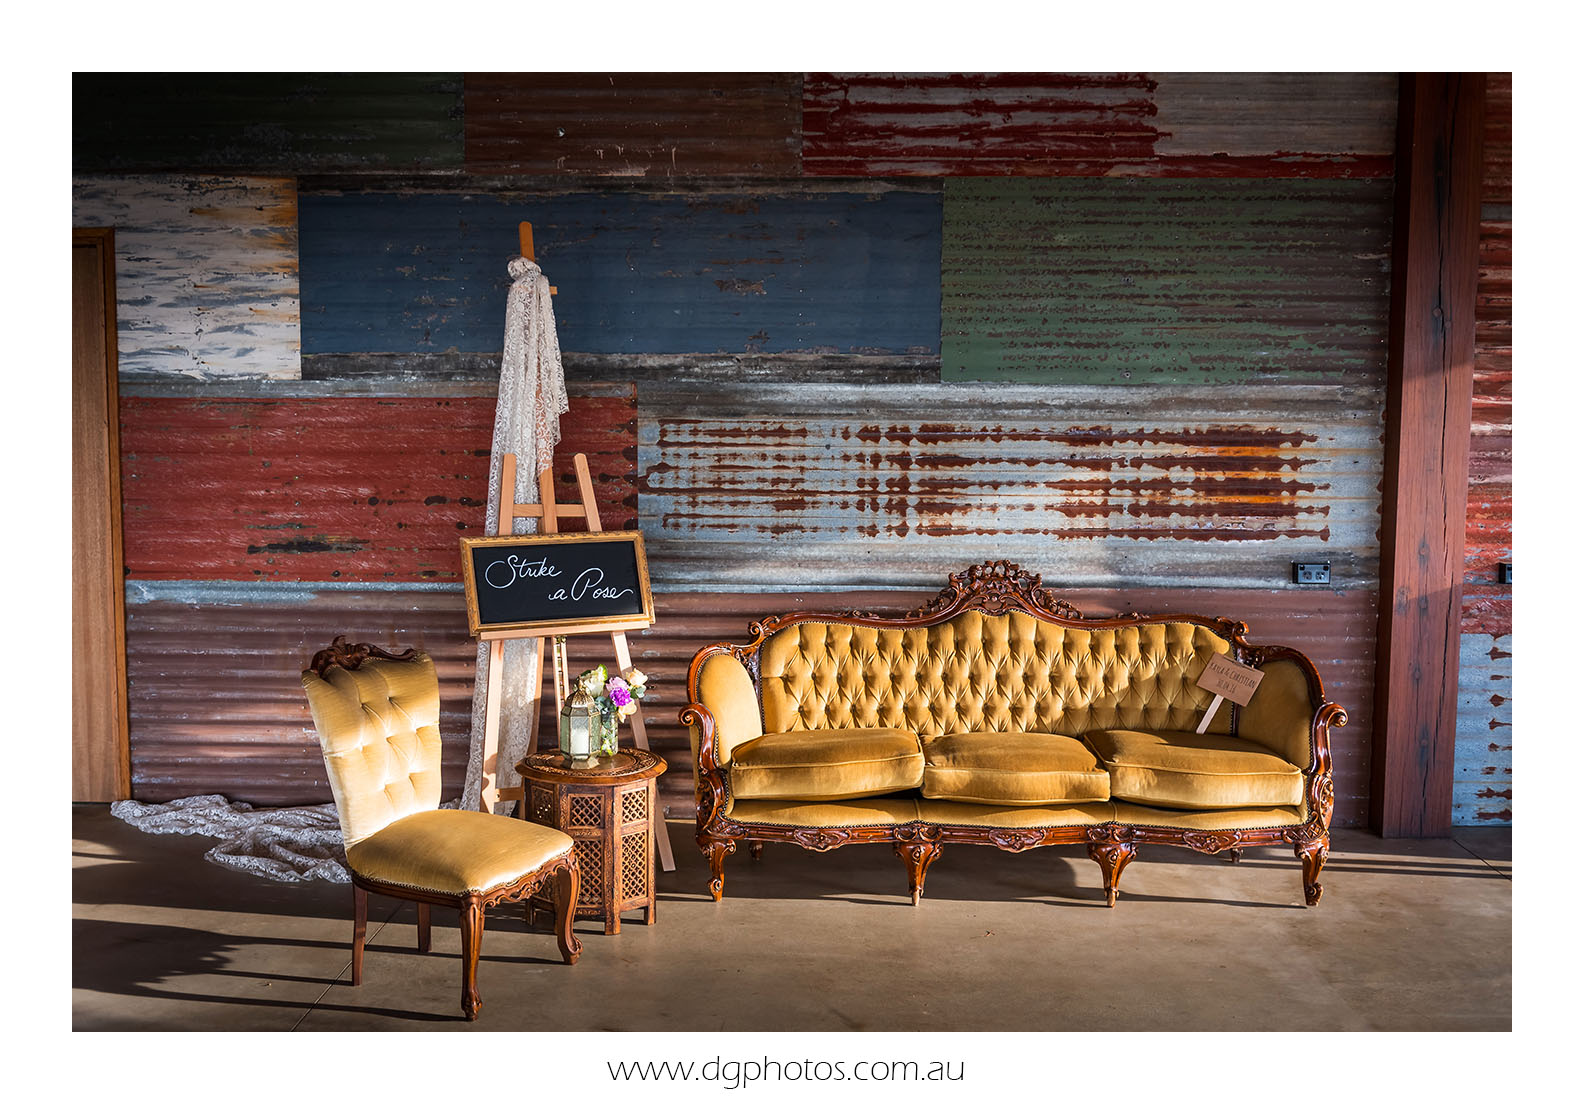 louis lounge vintage lounge hire gold blue mountains stylist prop hire wedding hire event hire corporate